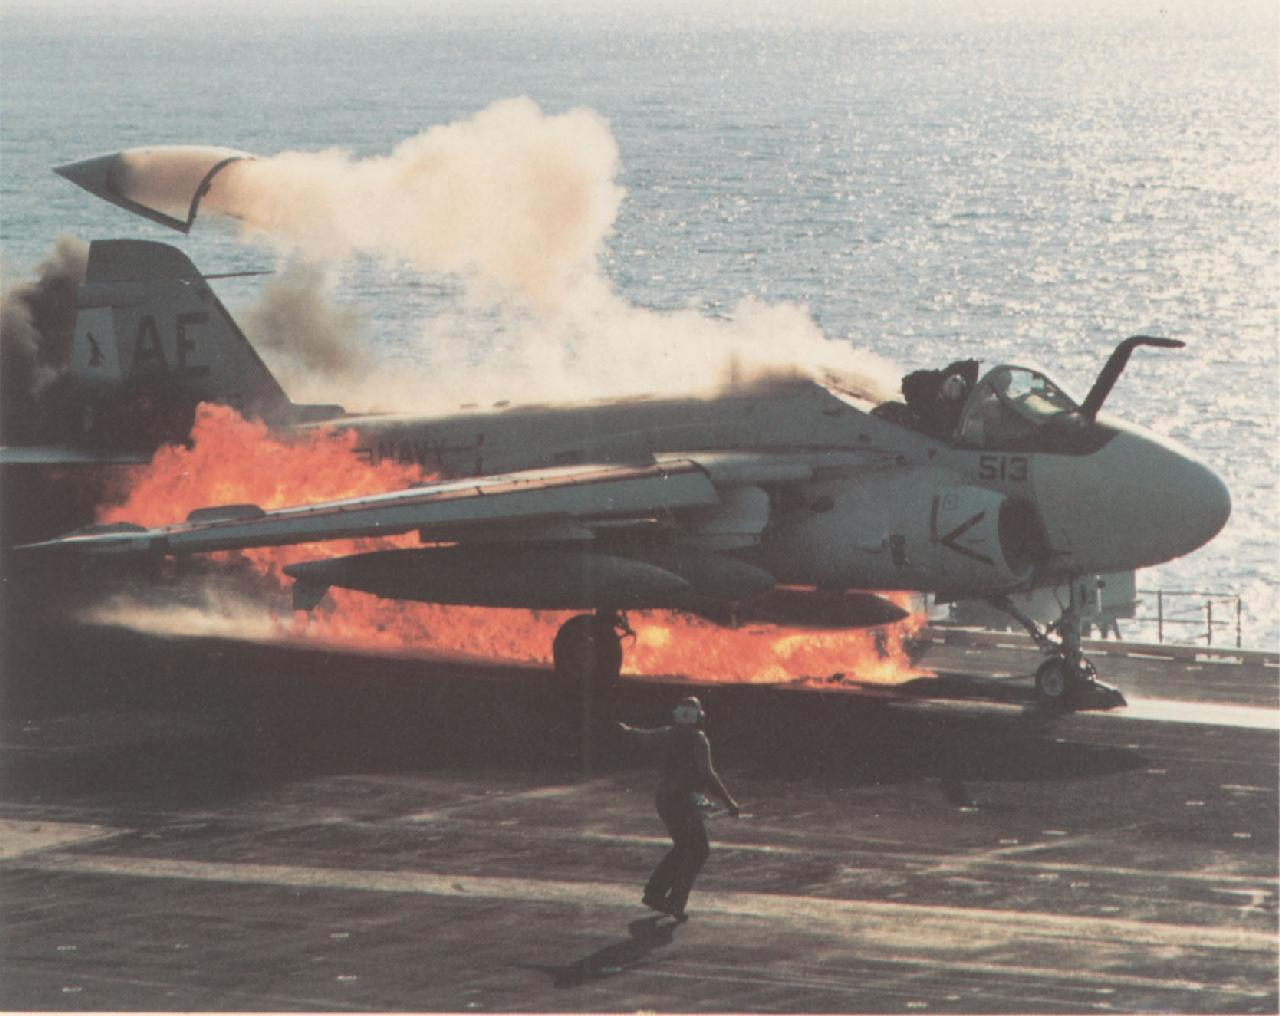 KA-6D on fire on the catapult